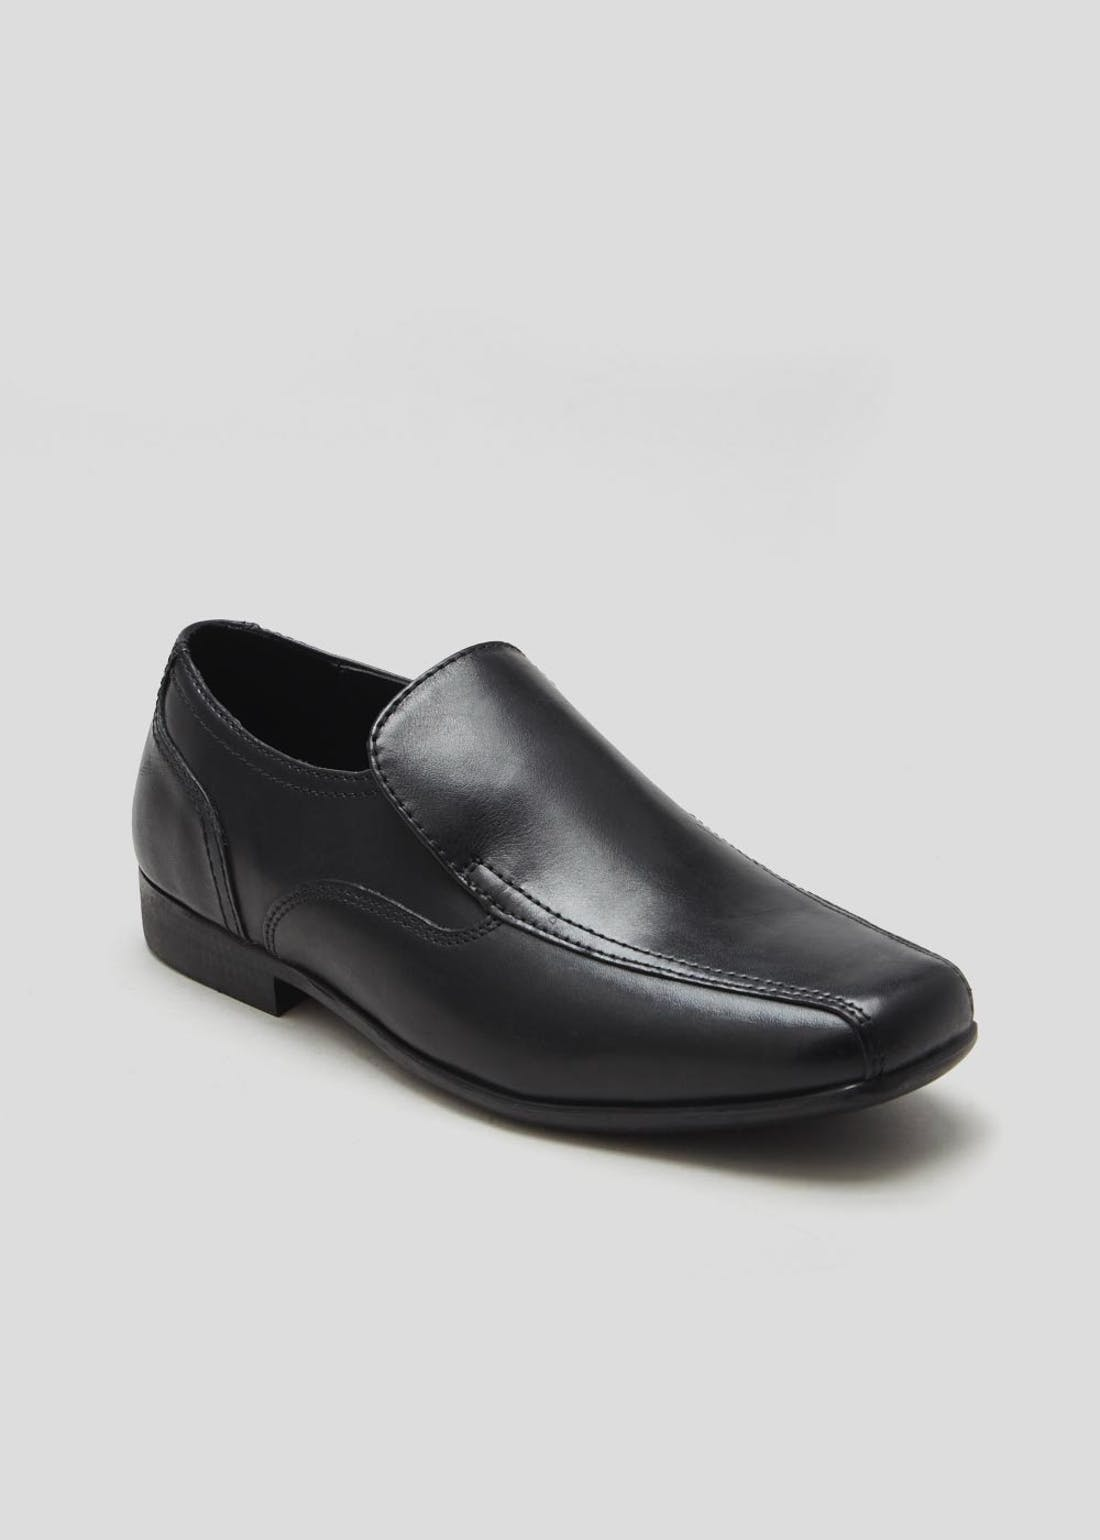 Boys Black Leather Slip On Shoes (Younger 10-Older 6)